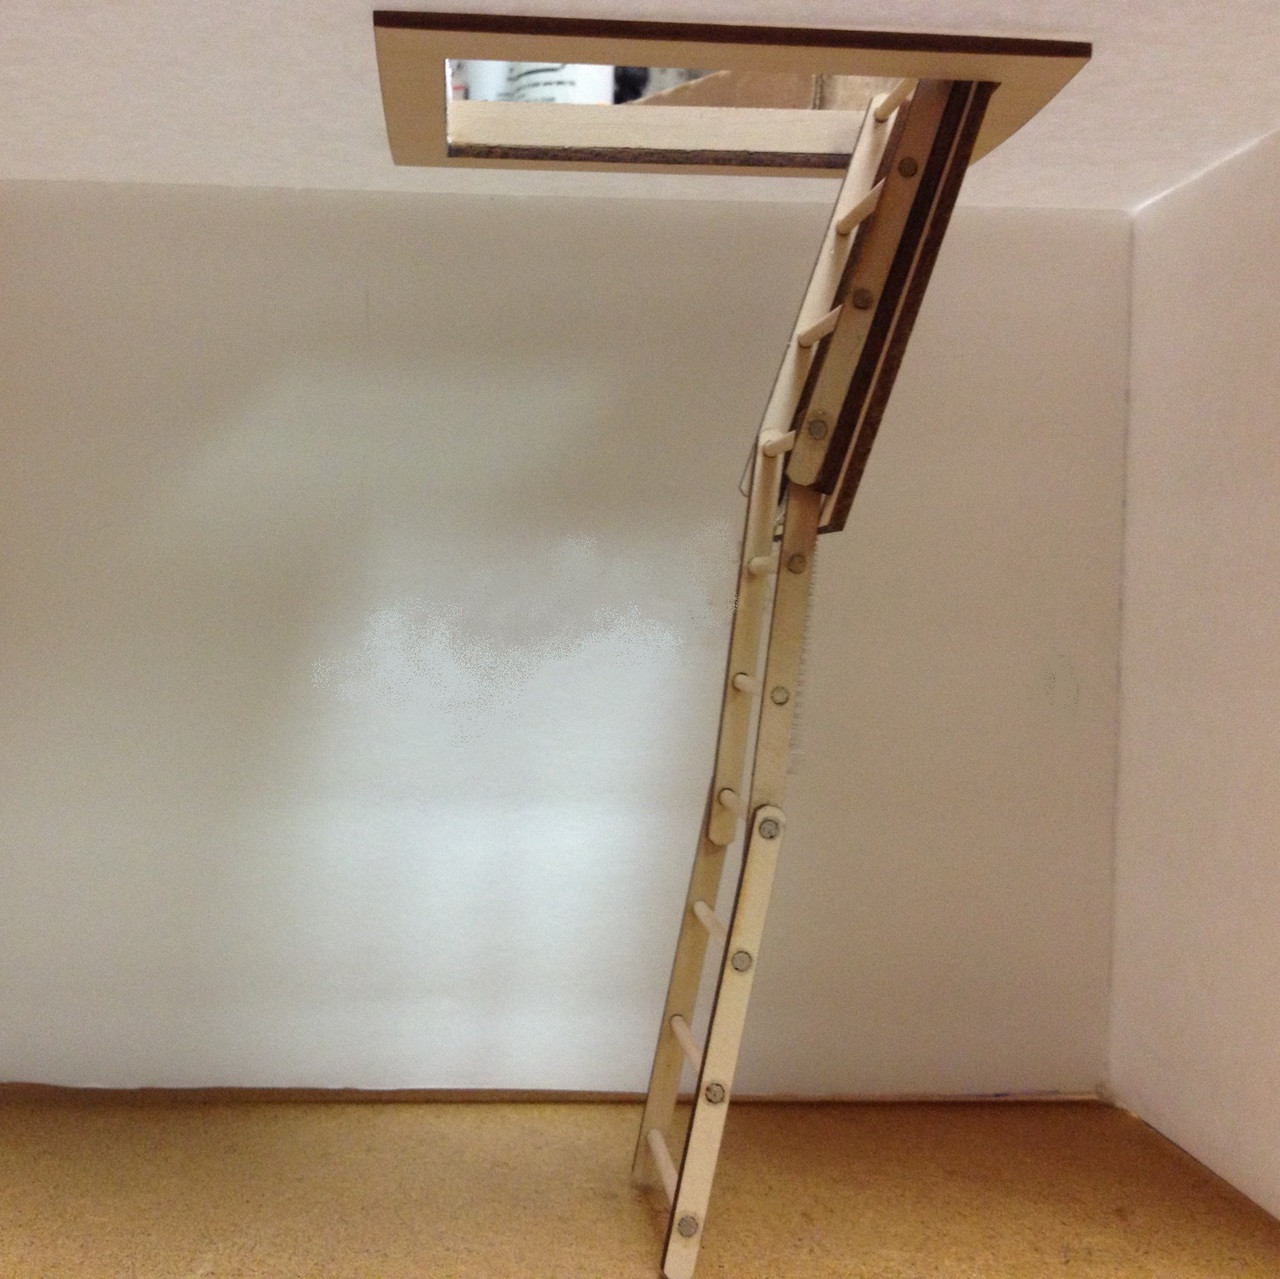 Dollhouse Miniature Attic Stairs with Pull Chain 1:12 Scale